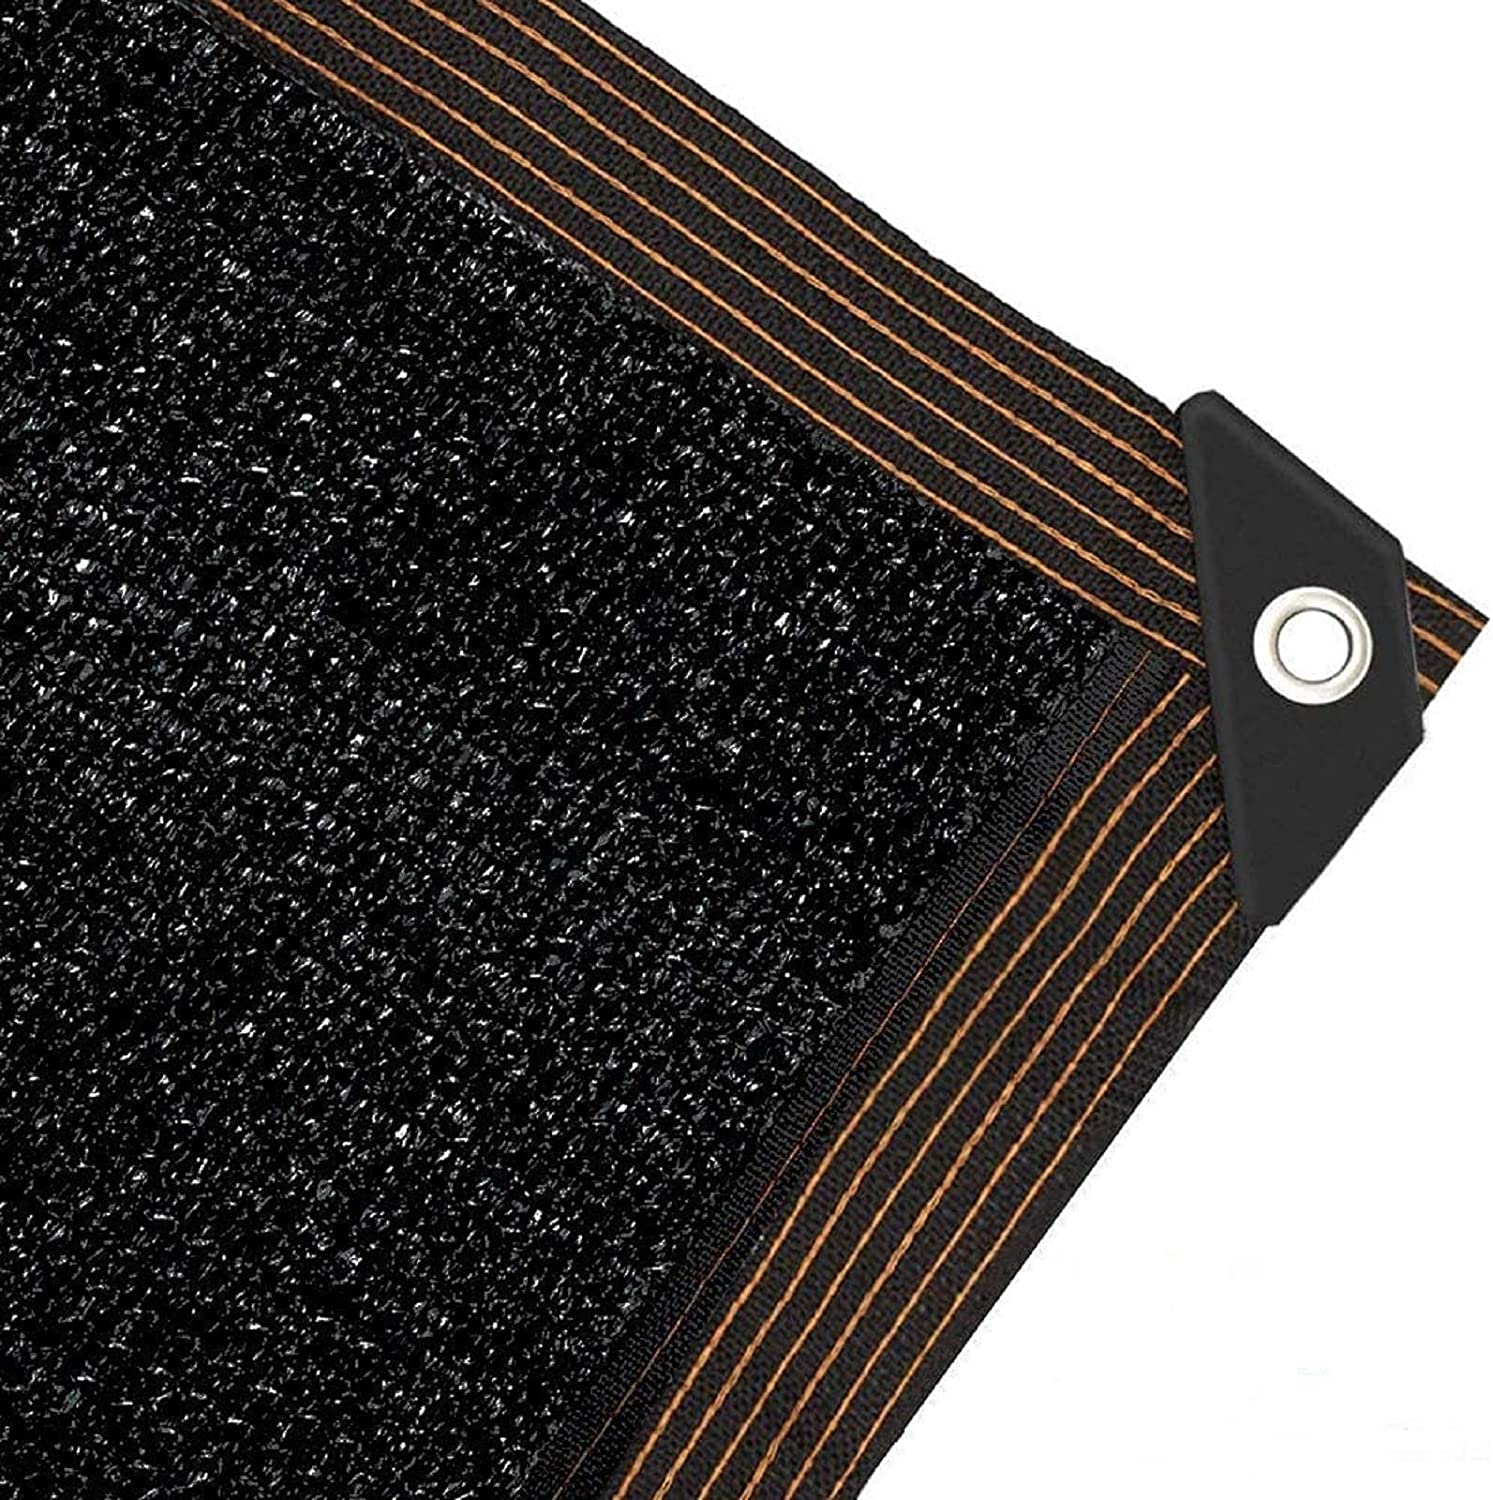 Milky House Shade Cloth 90% Sunblock Mesh 6.5FT x 6.5FT Taped Edge with 8 Aluminum Grommets Easier to Hang, UV Resistant Shade Sun Black Net for Greenhouse Flowers Plants Patio Lawn Mesh